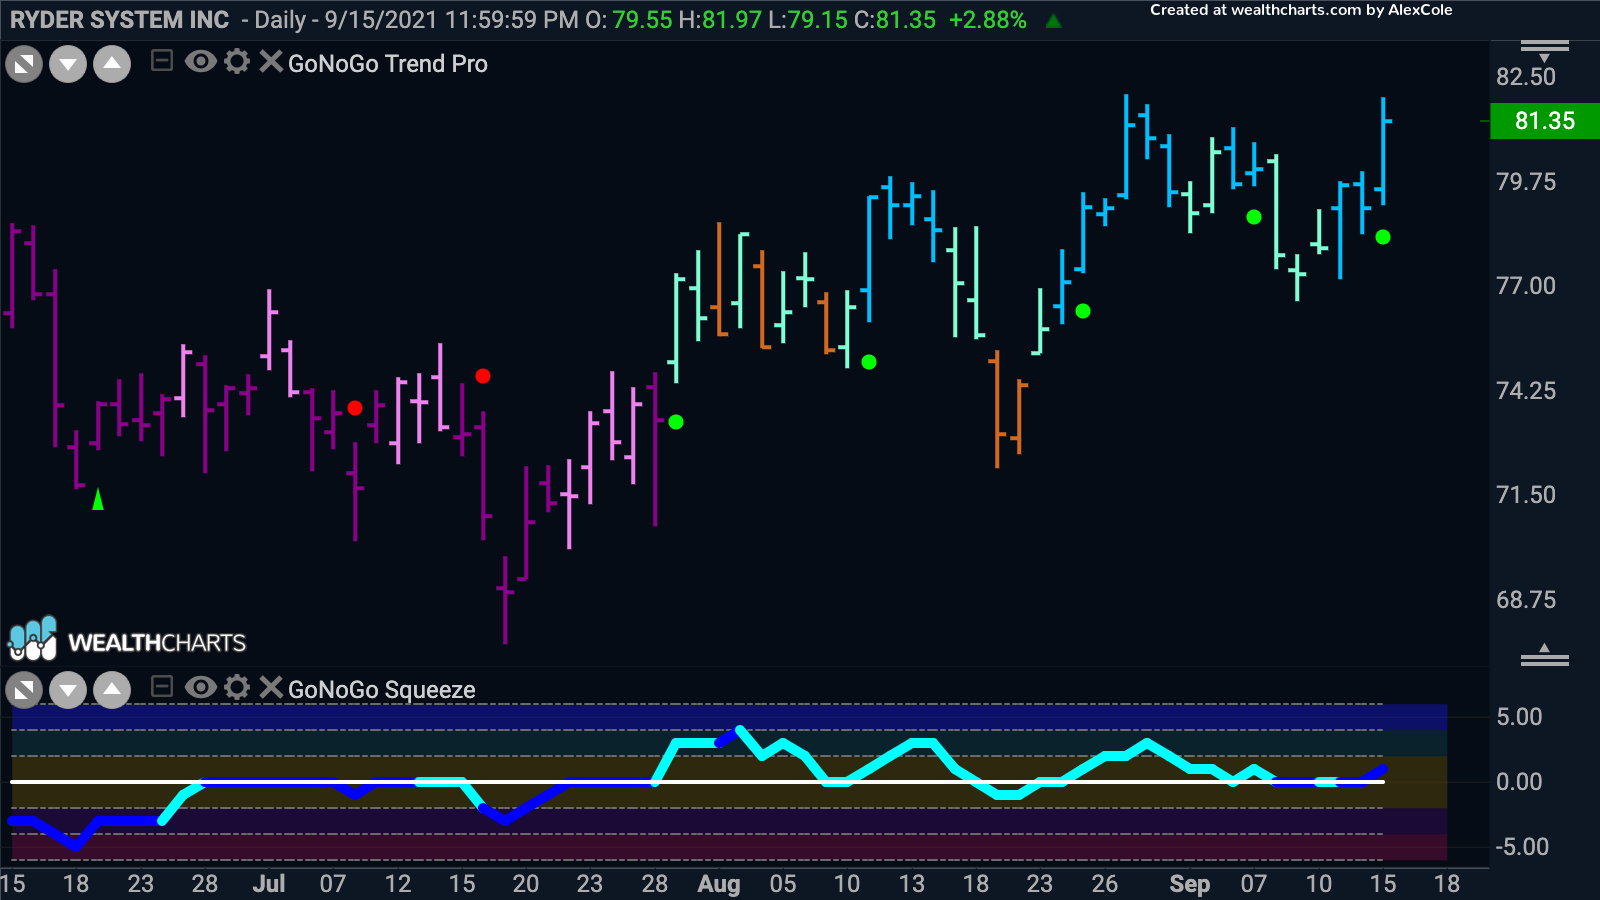 """Ryder System Inc reaching for new high in """"Go"""" trend"""